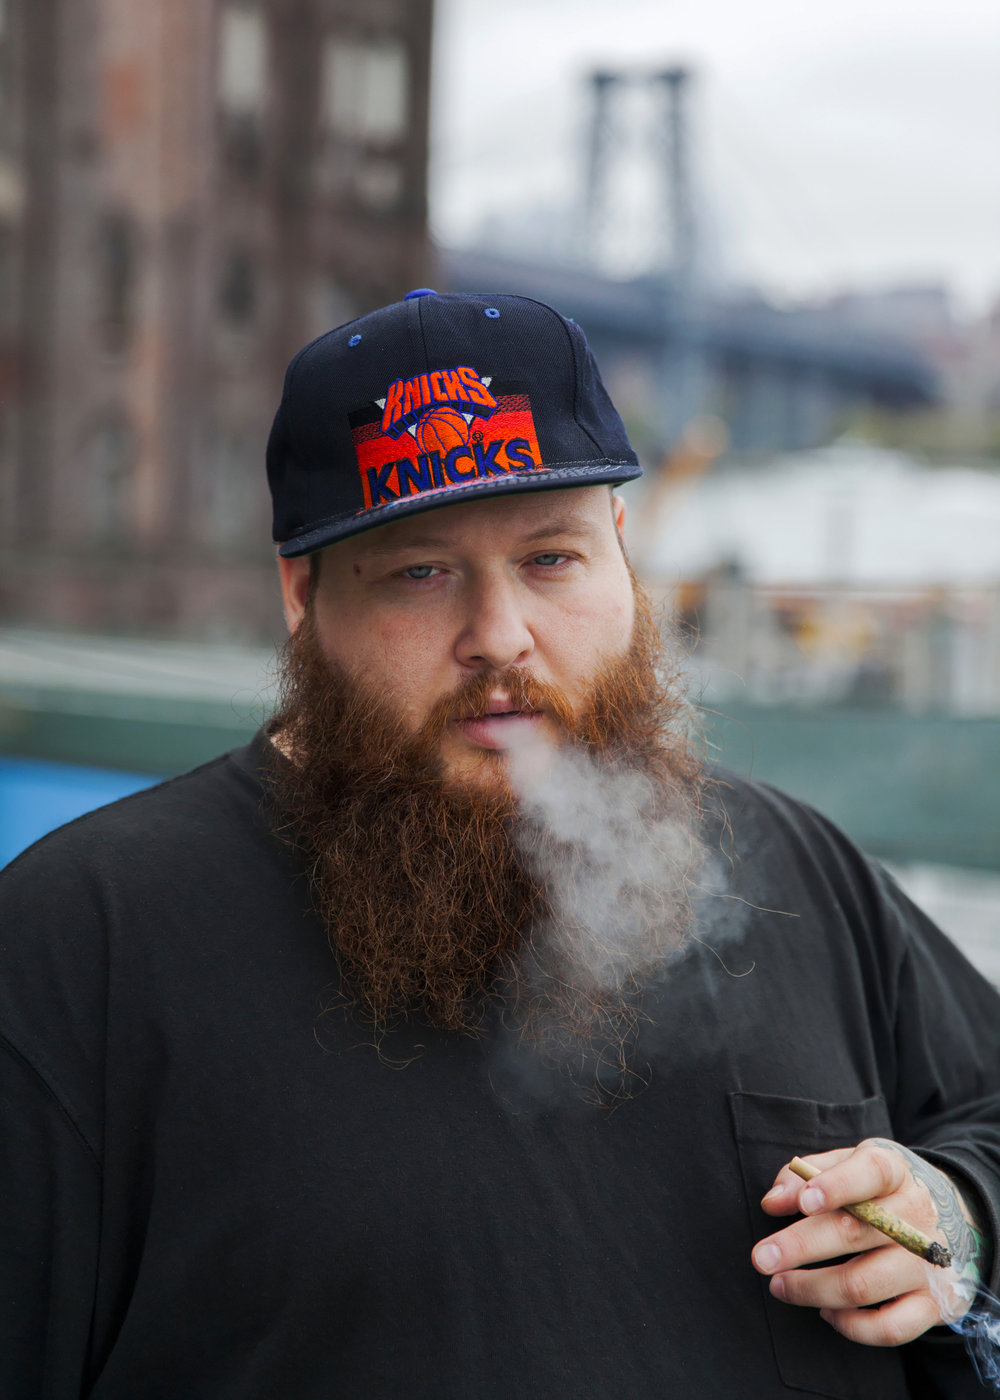 ActionBronson_10Inches.jpg